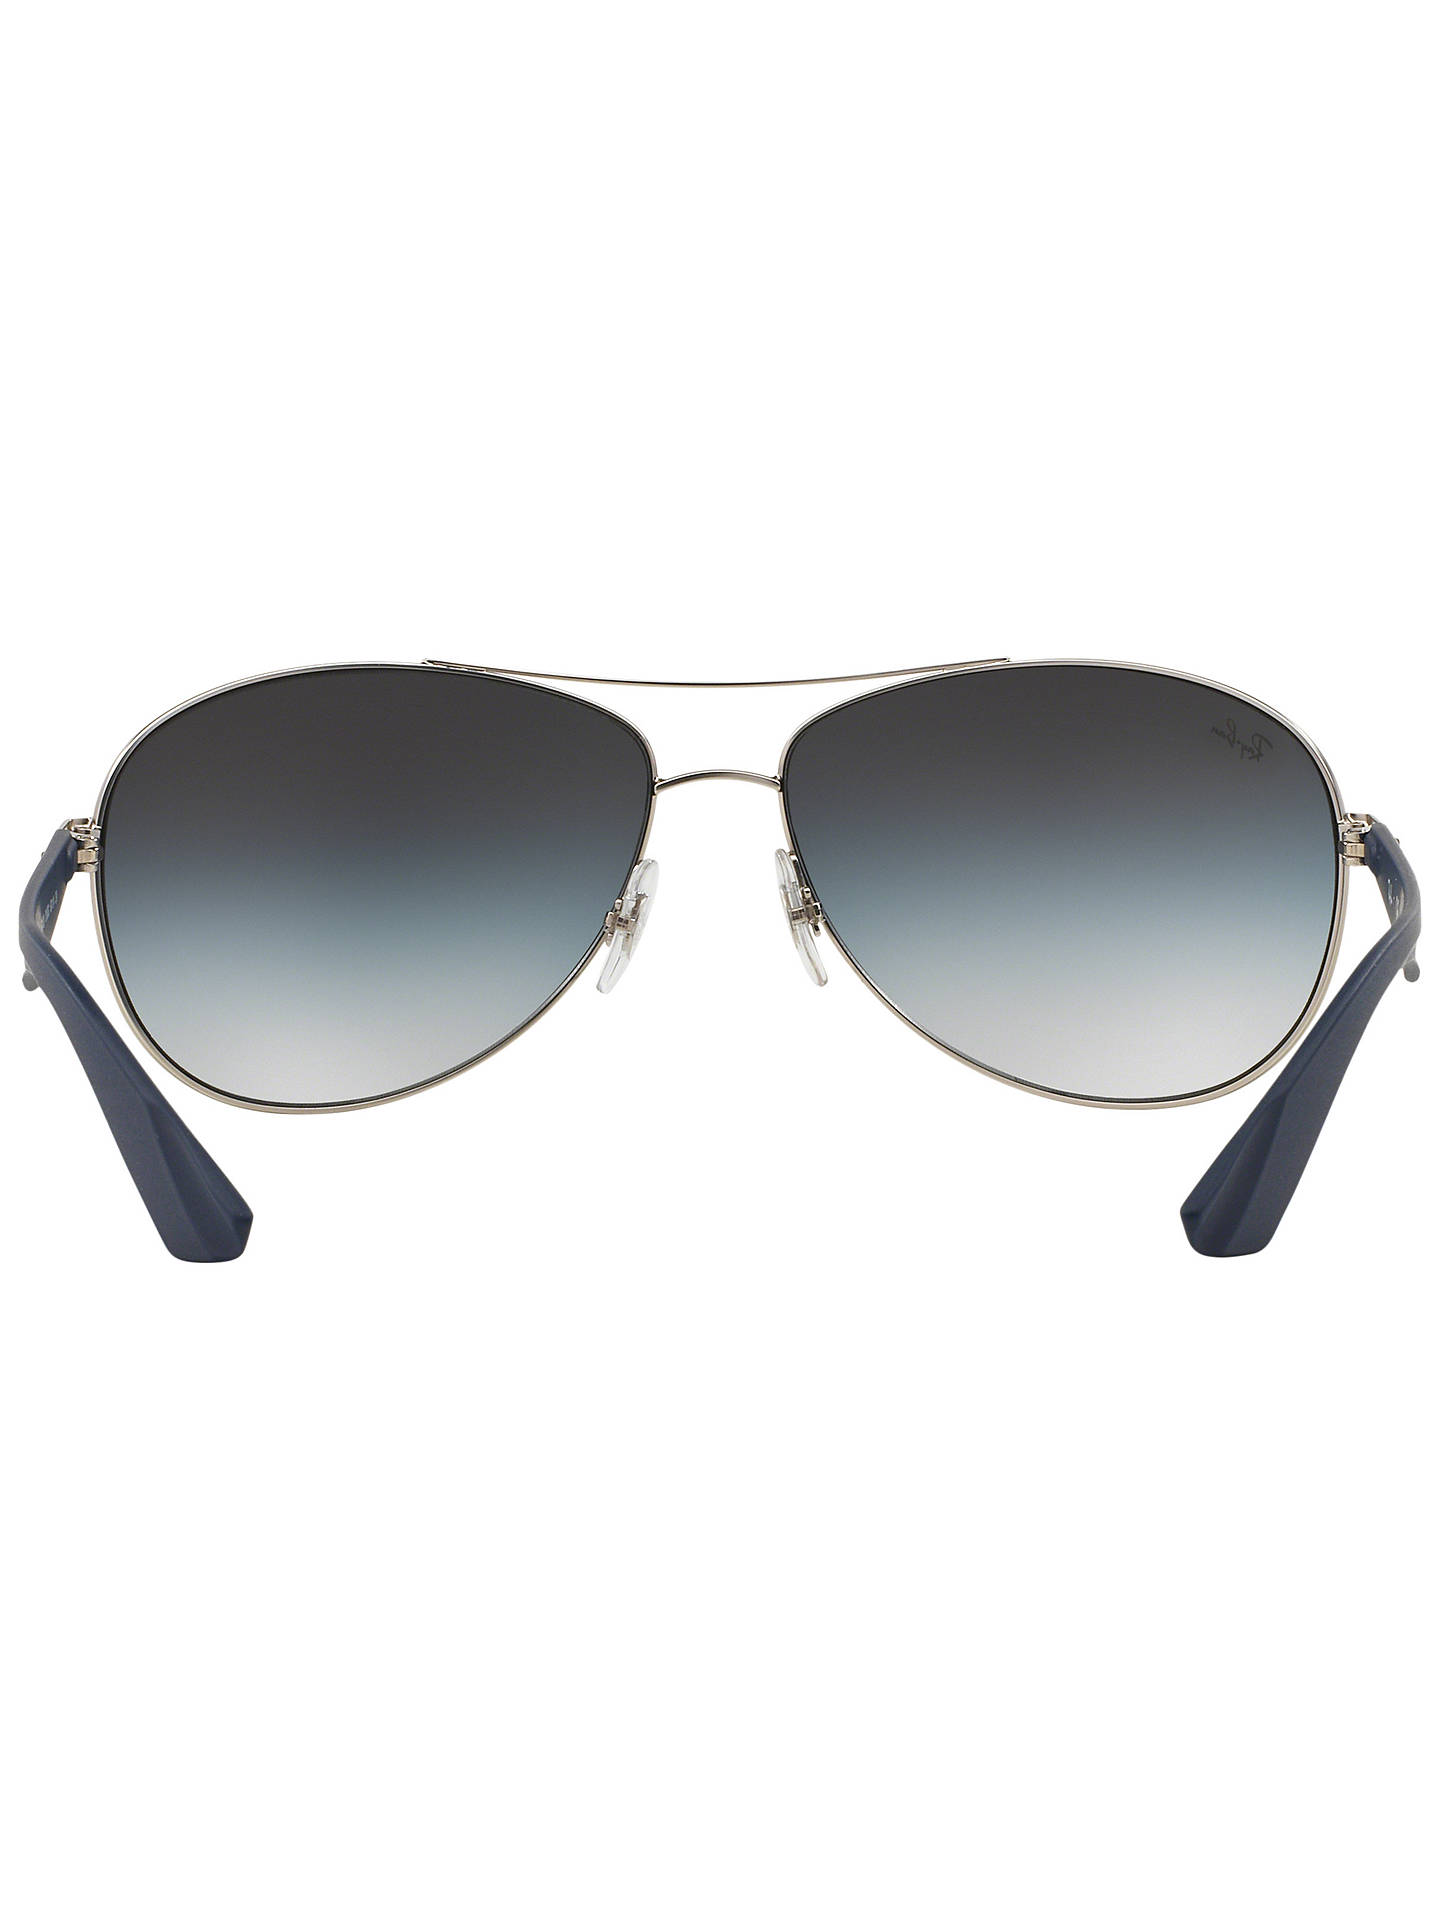 Buy Ray-Ban RB3526 Metal Framed Pilot Sunglasses, Silver Online at johnlewis.com